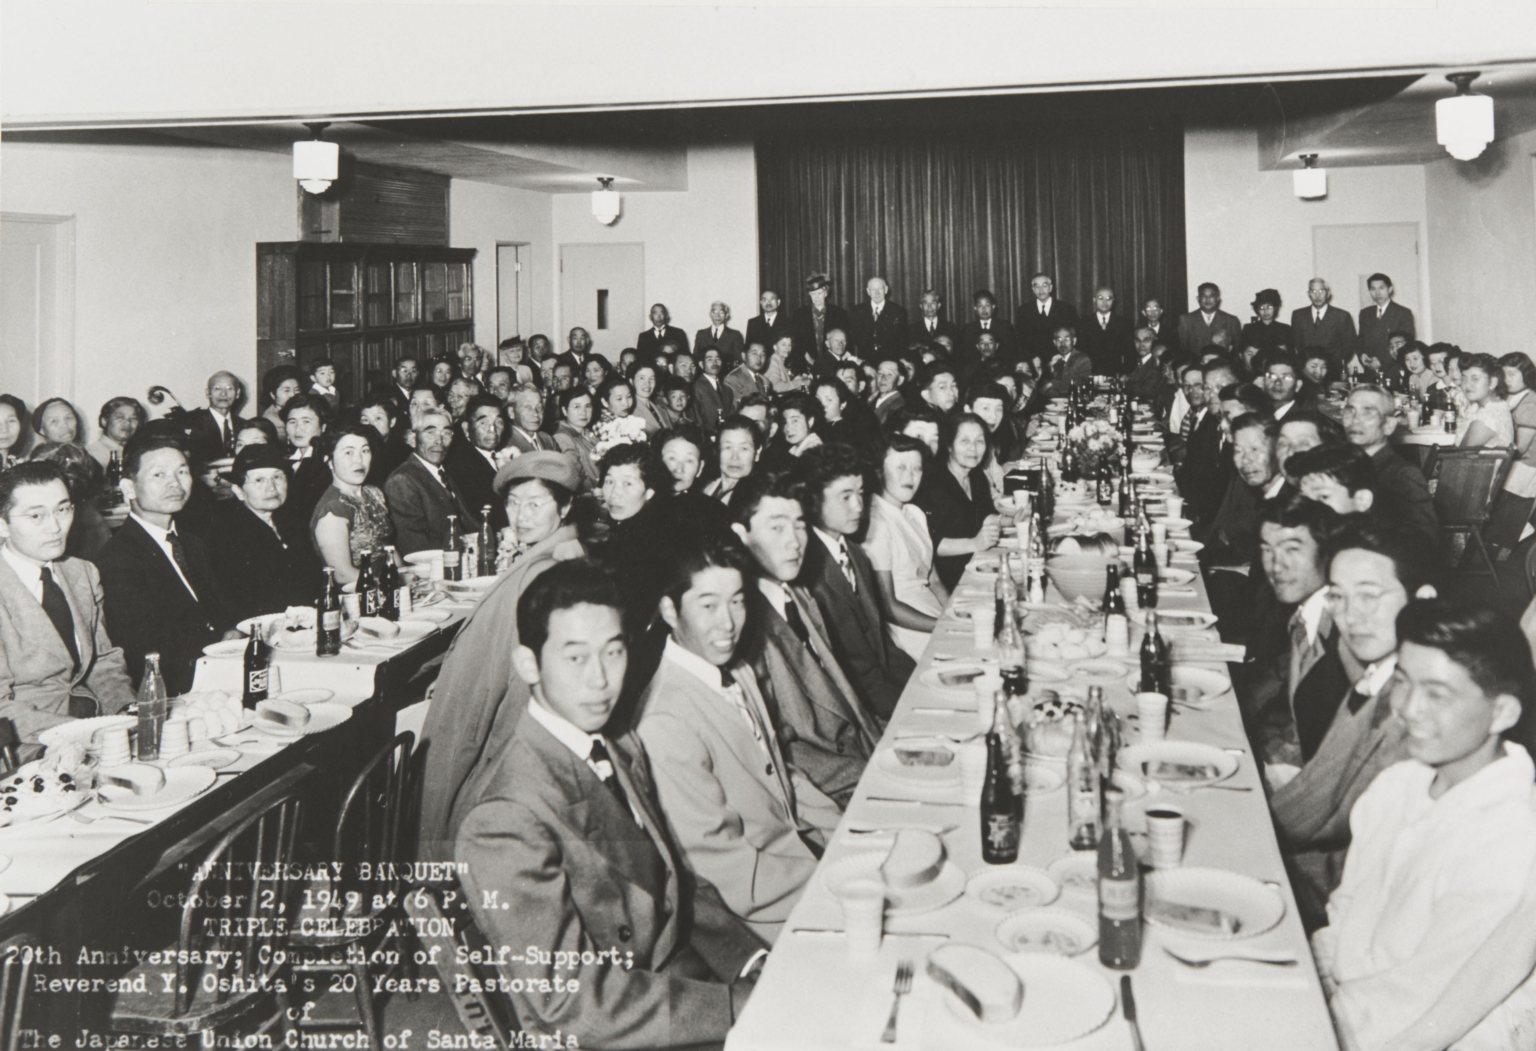 Japanese Union Church of Santa Maria Triple Celebration : October 2, 1949. (20th Anniversary, completion of self support, and Rev. Y. Oshita's 20th year pastorate).